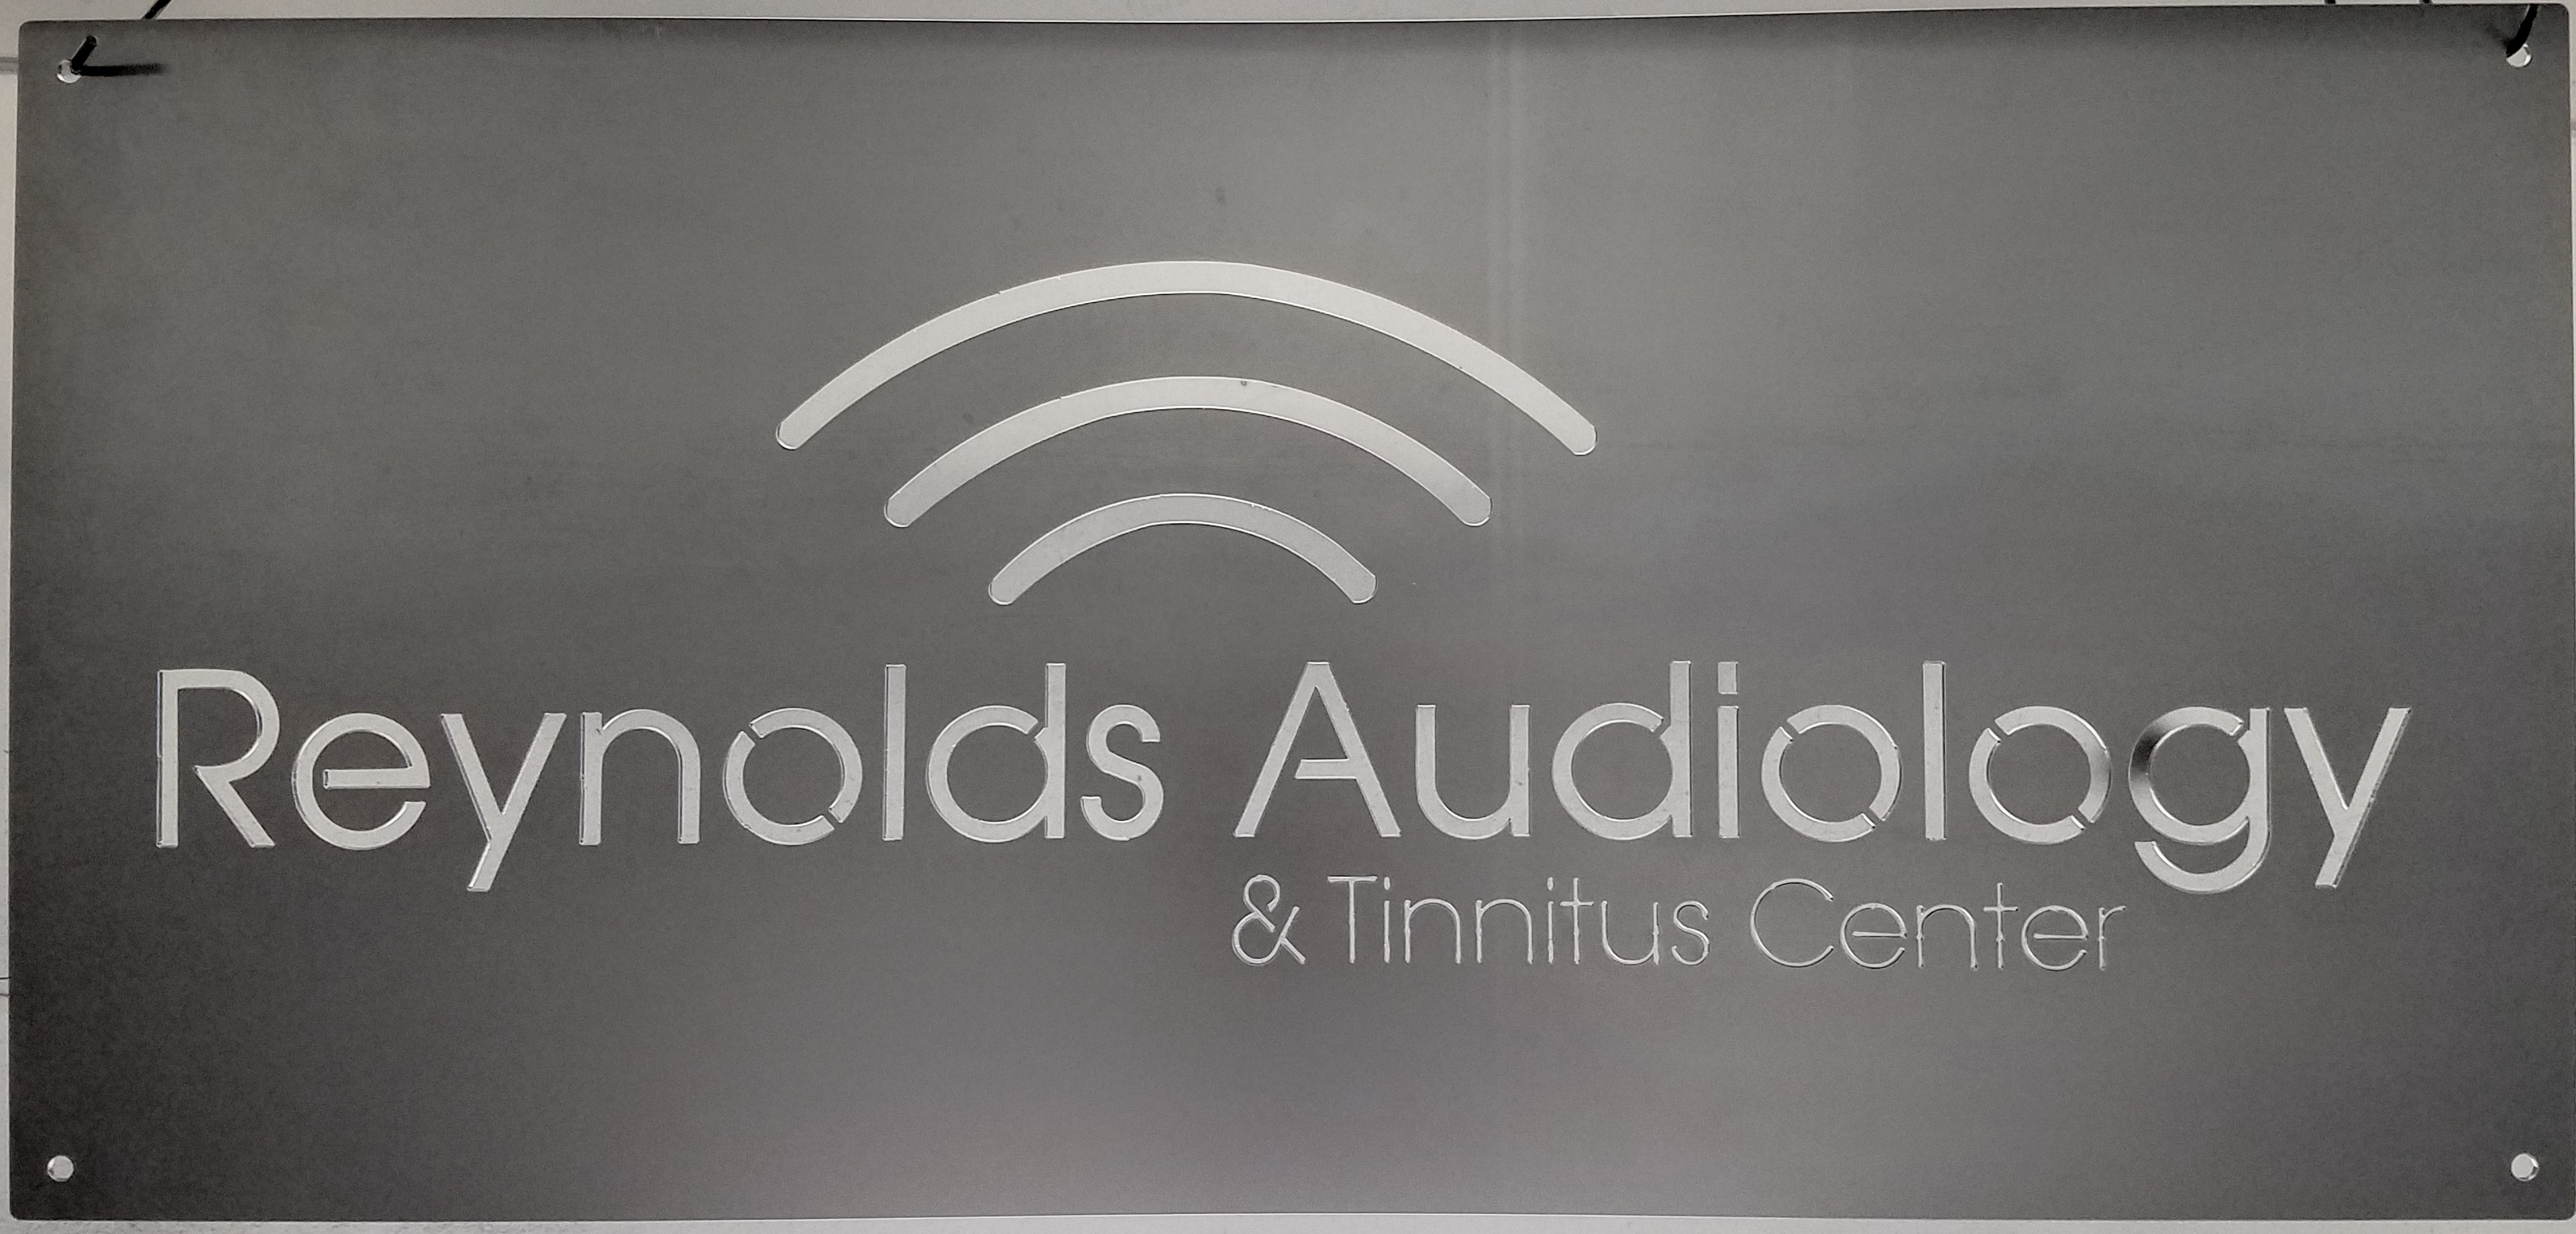 reynolds-audiology-sign.jpg